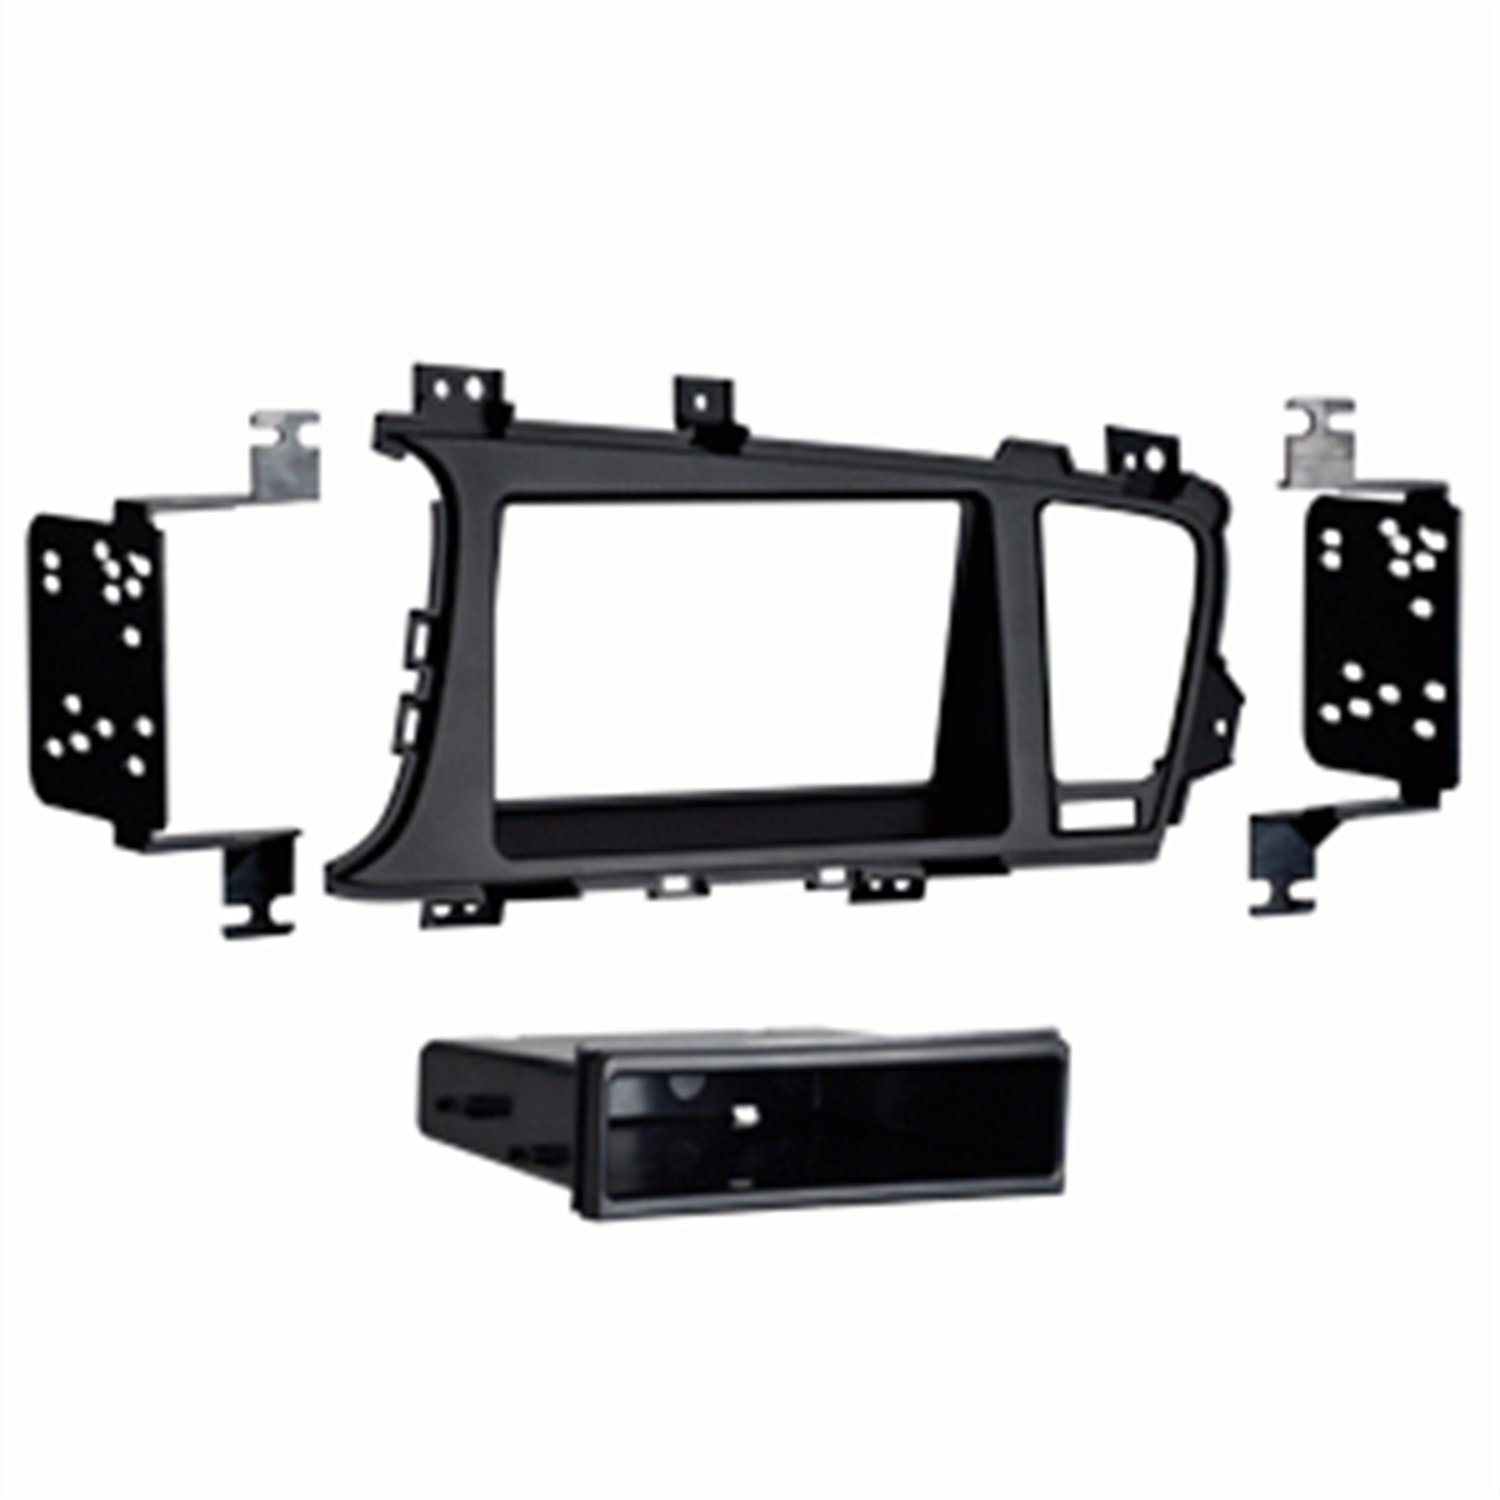 Amazon Metra 997345B Kia Optima 2011UP SingleDouble DIN – Kia Optima Wiring Harnes